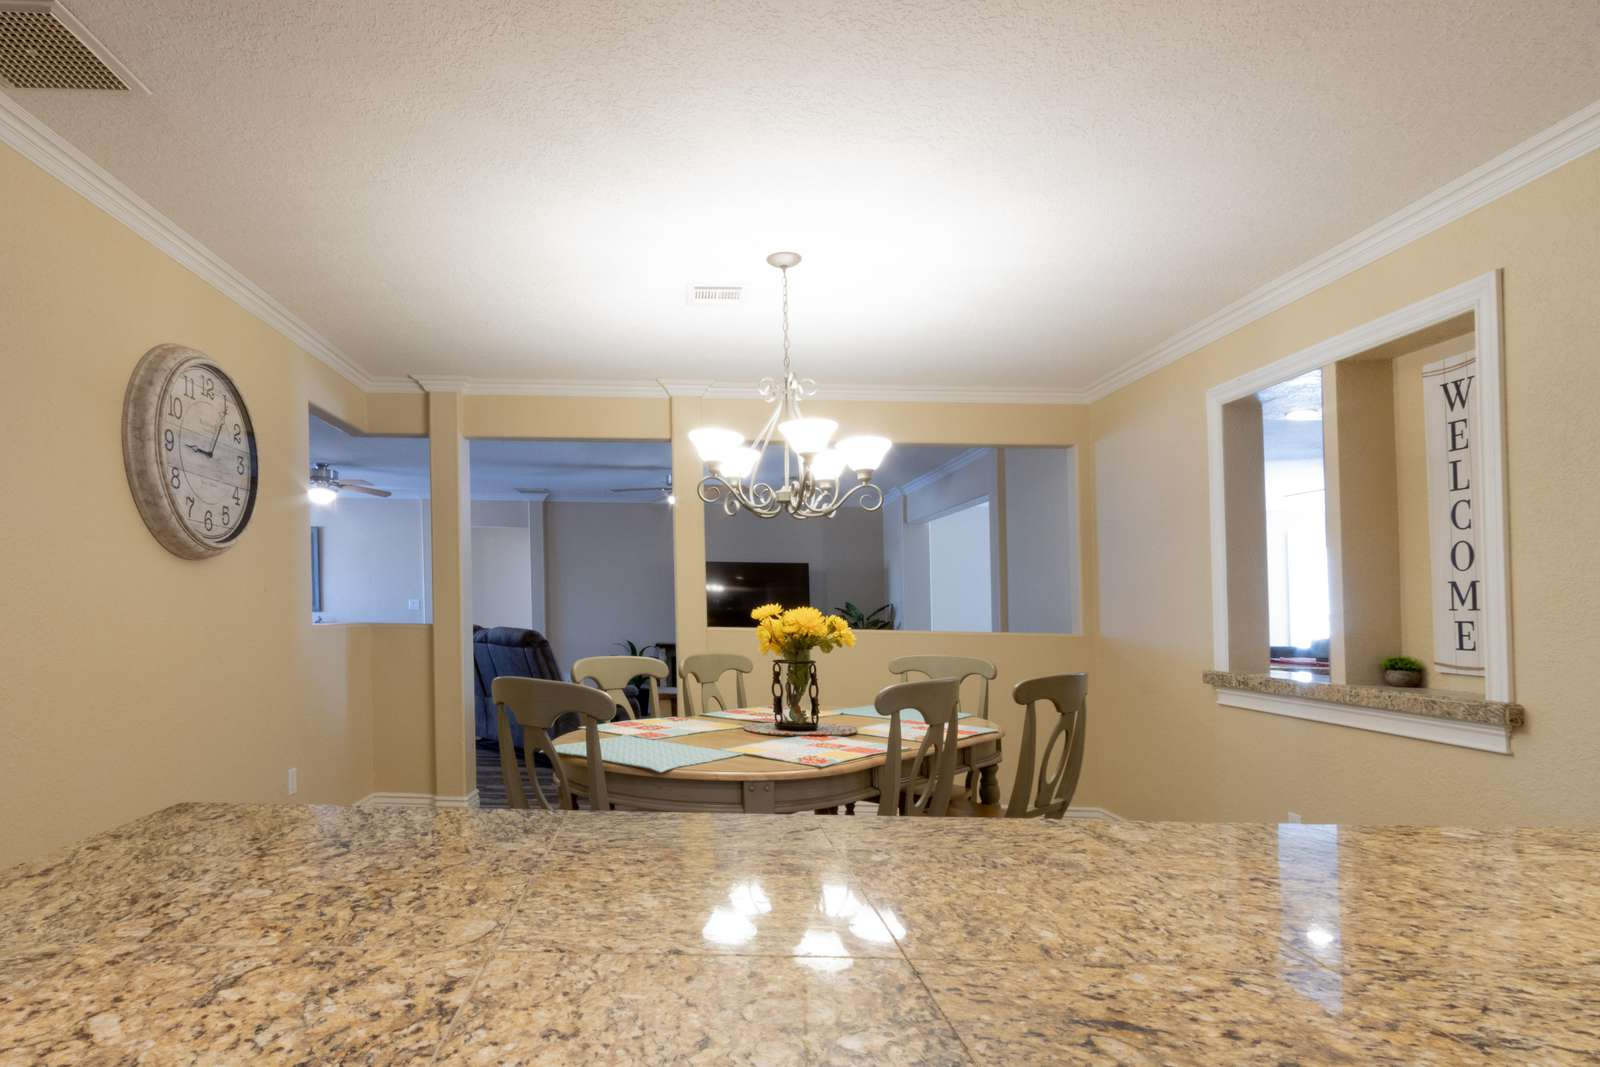 Dining room from kitchen counter top